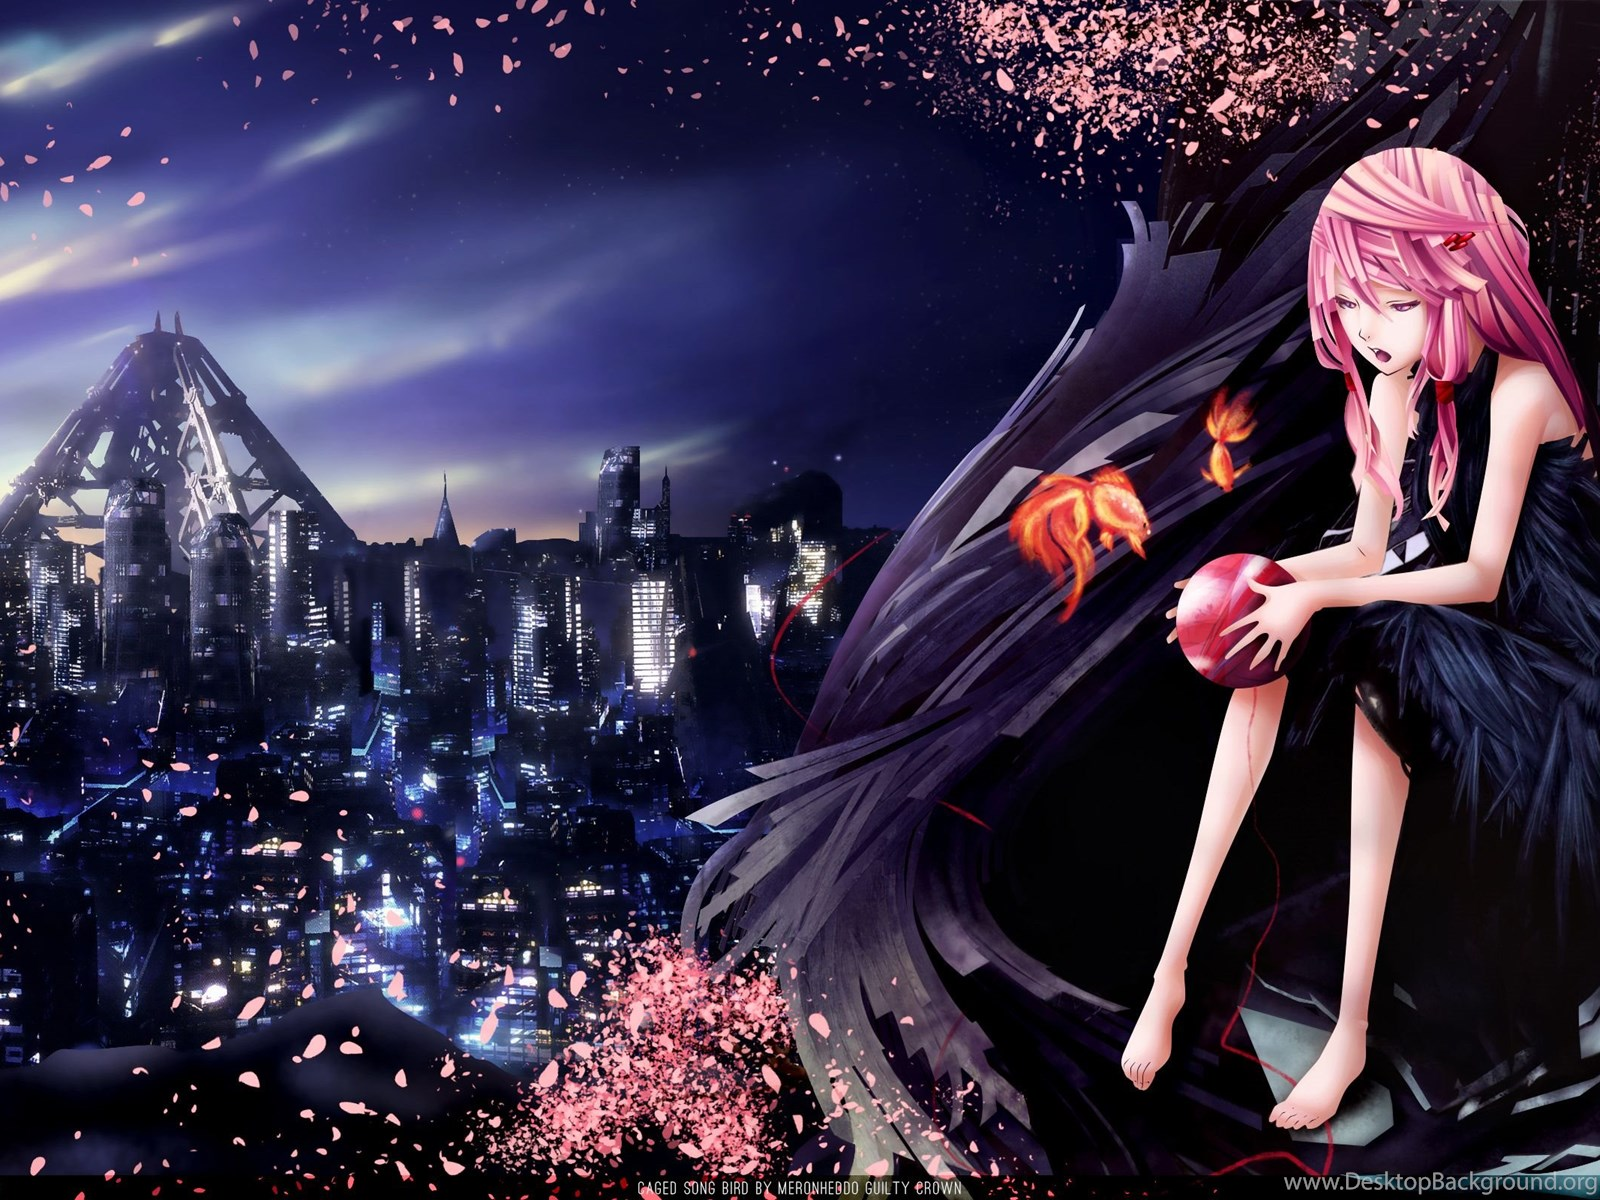 Guilty Crown Wallpapers Wallpaper. Desktop Background